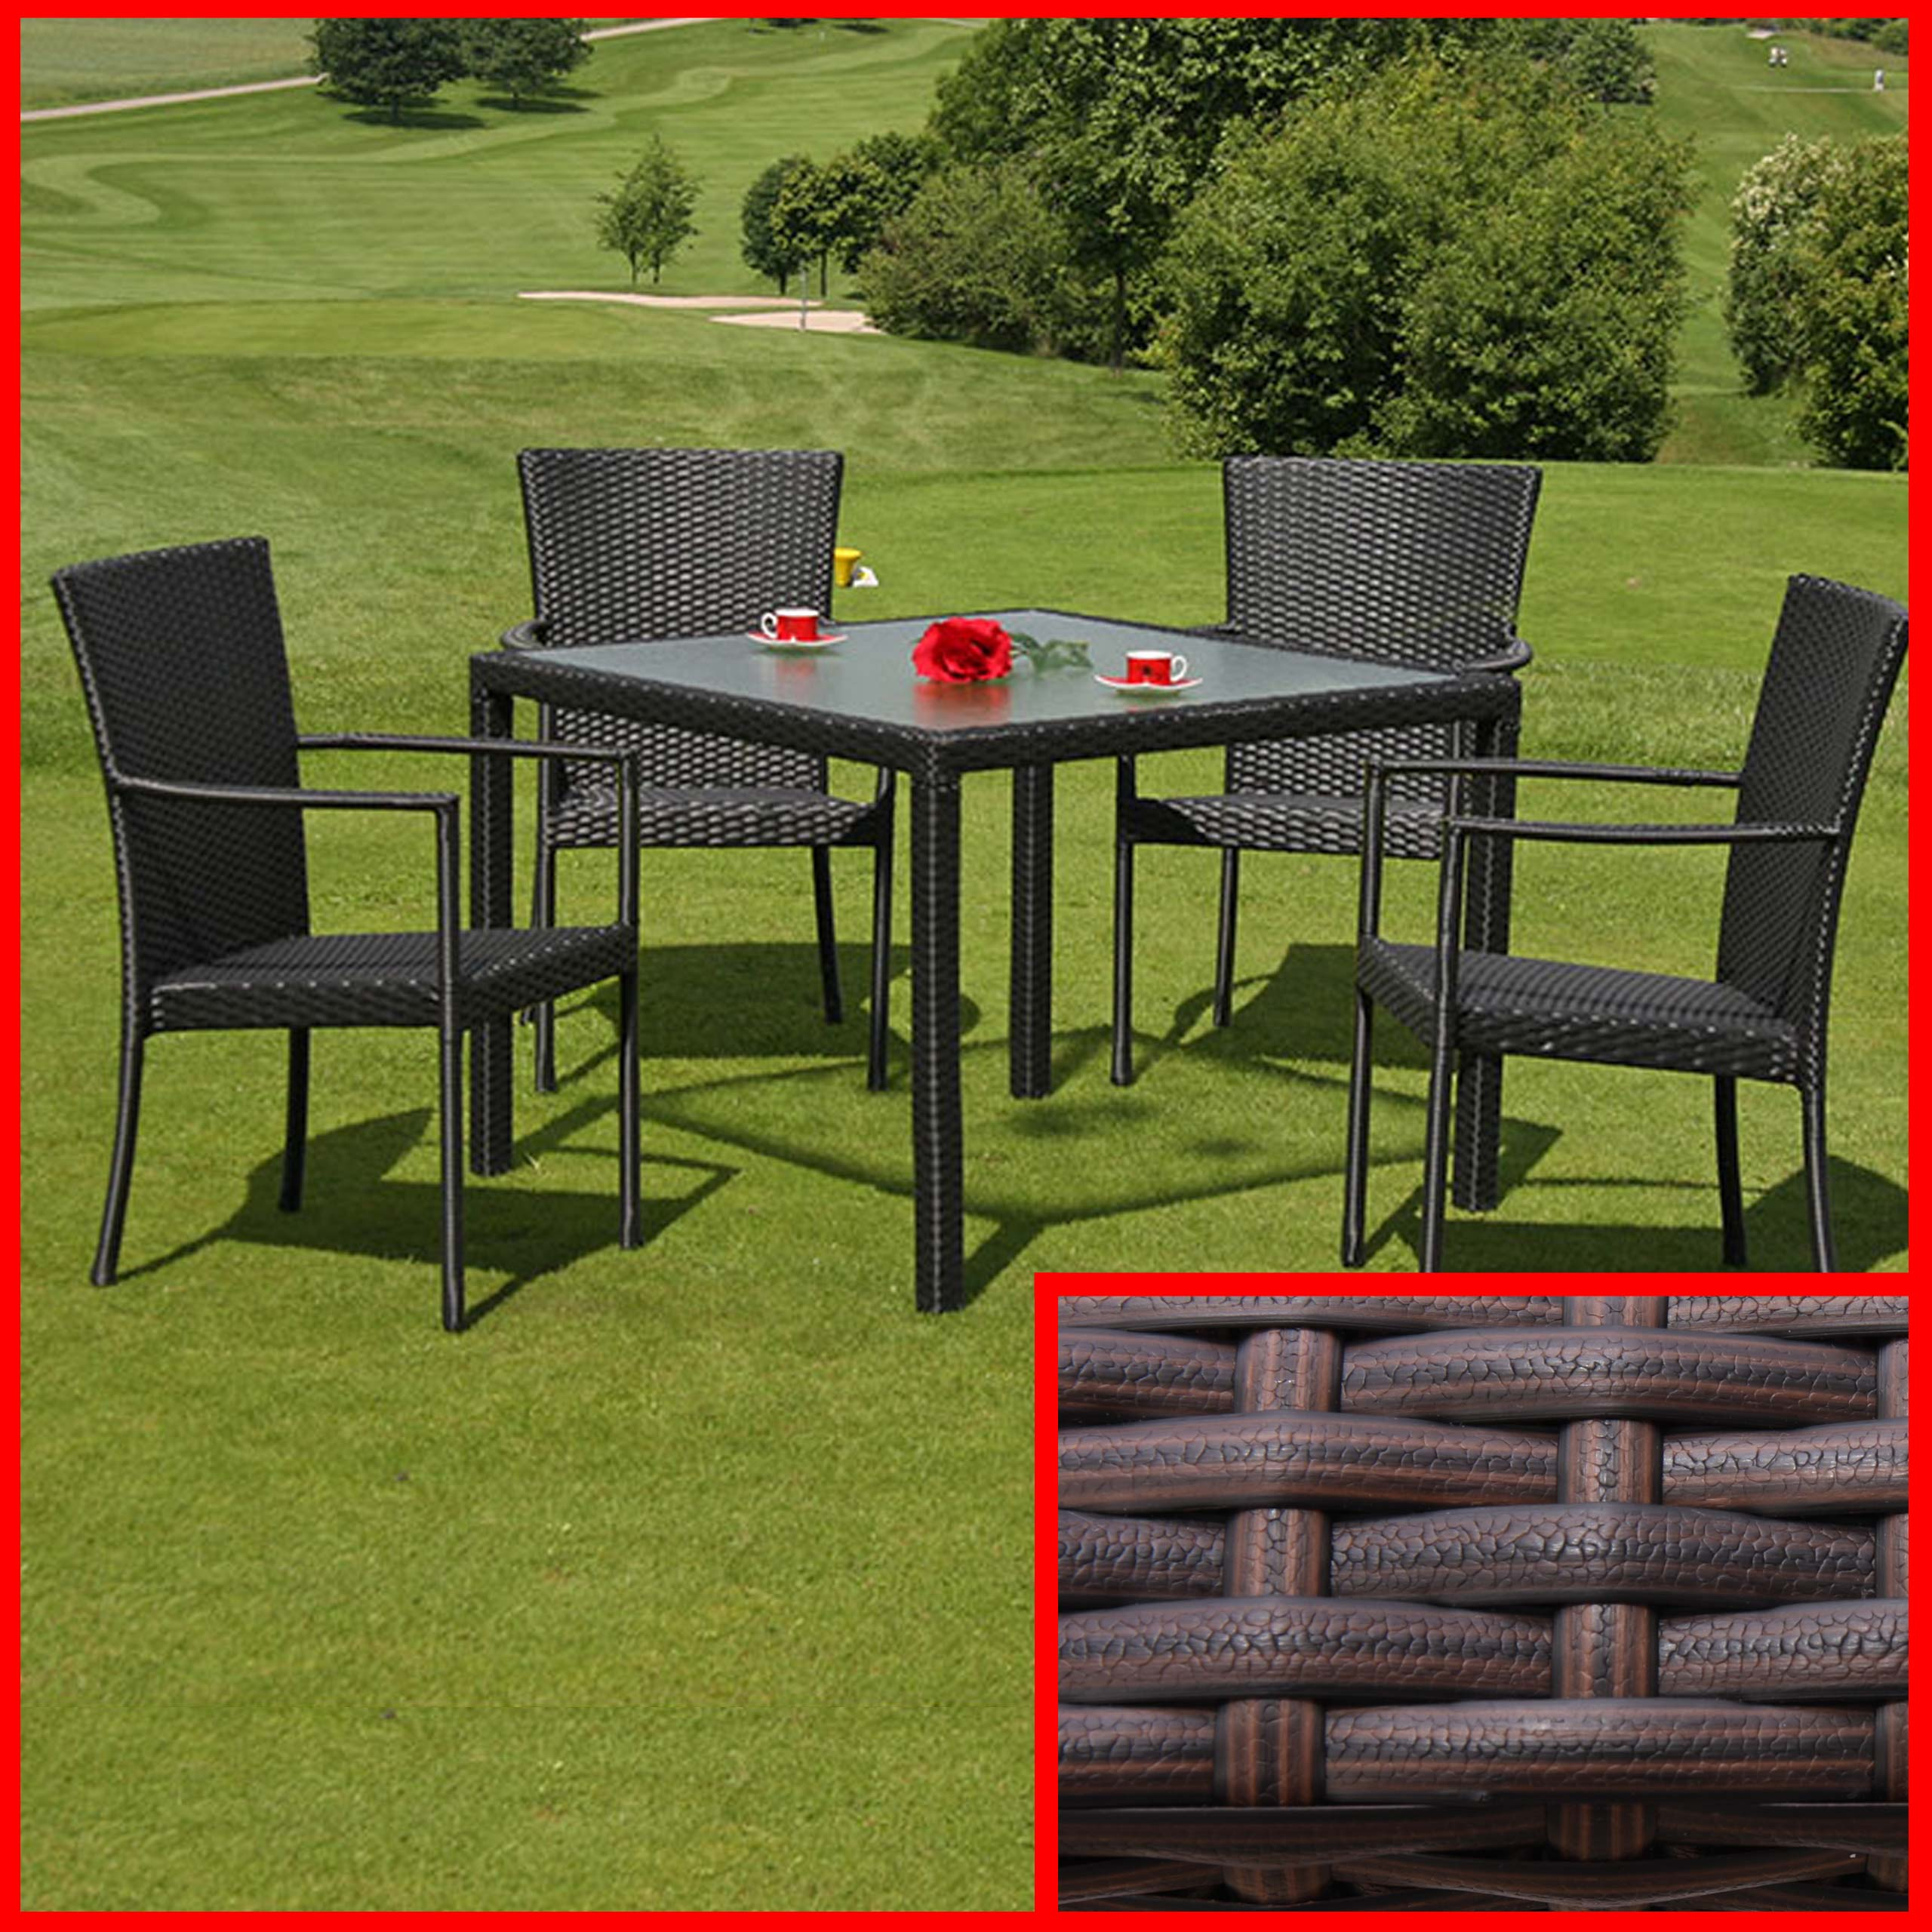 esszimmertisch gartentisch romv poly rattan 100x100x72cm. Black Bedroom Furniture Sets. Home Design Ideas